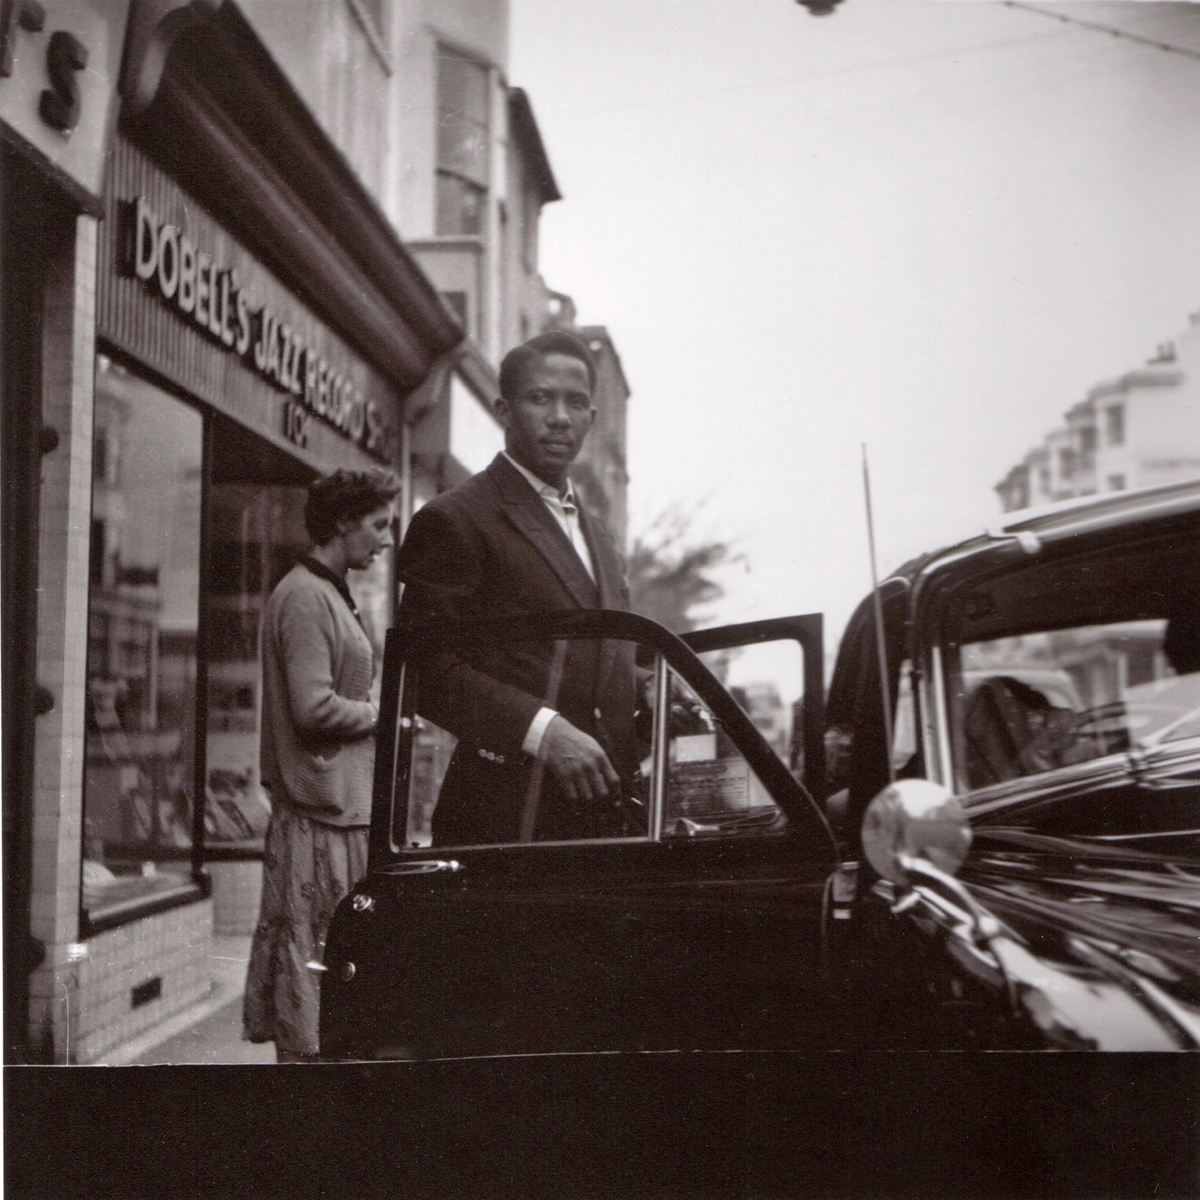 Unknown man outside shop, possibly Pete Martin's wife Joyce behind him.